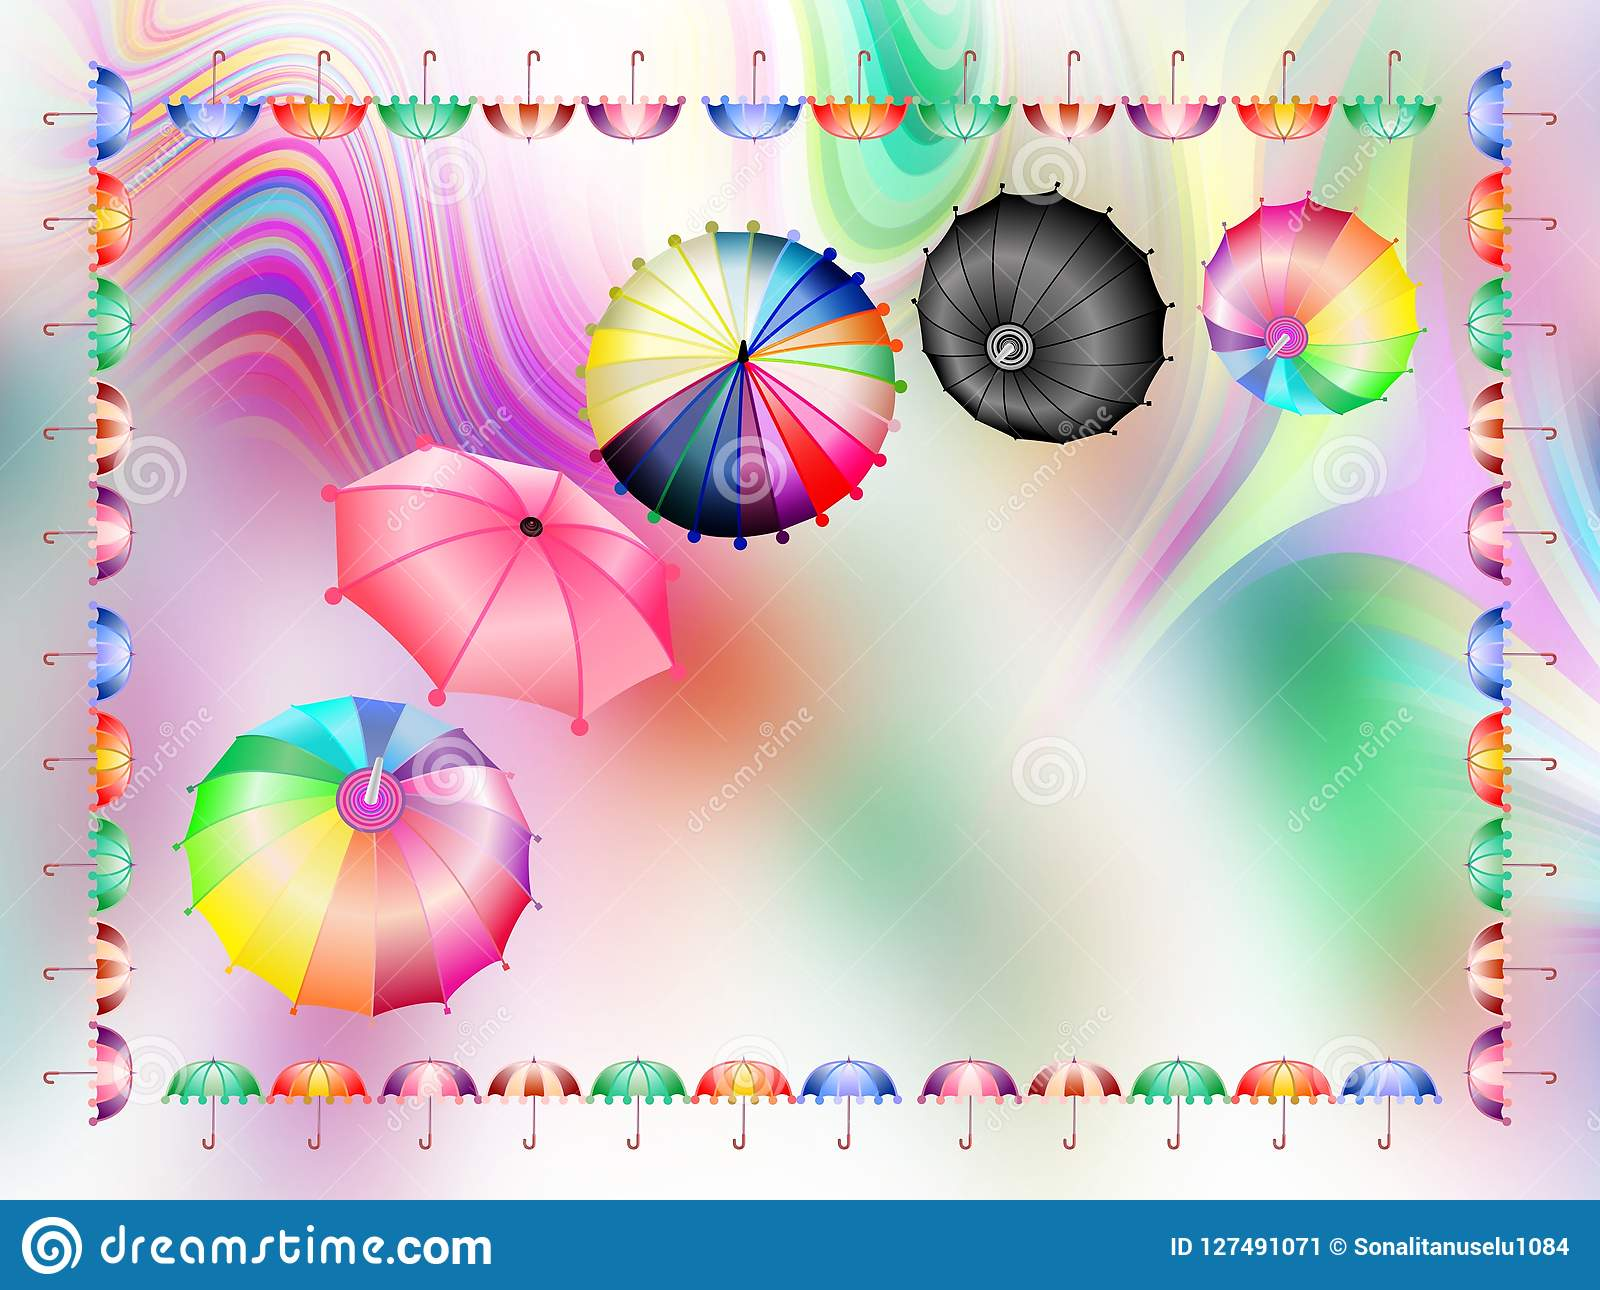 Colorful umbrellas combo, abstract background wallpaper, vector illustration.